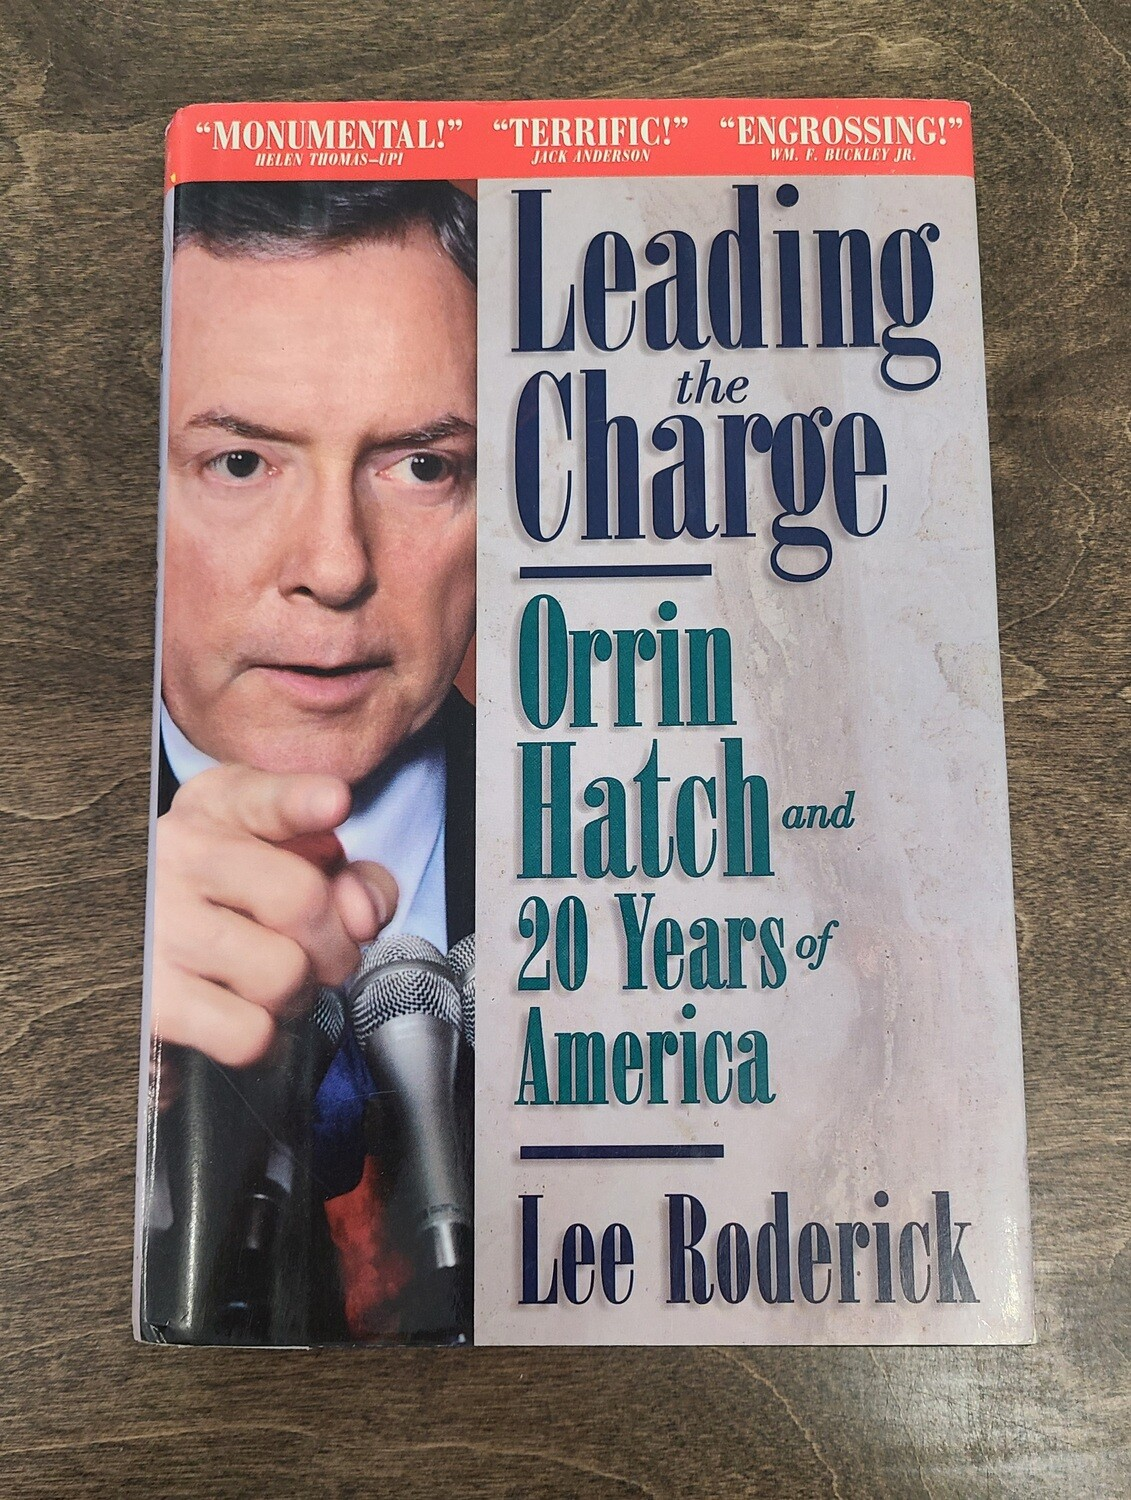 Leading the Charge: Orrin Hatch and 20 Years of America by Lee Roderick